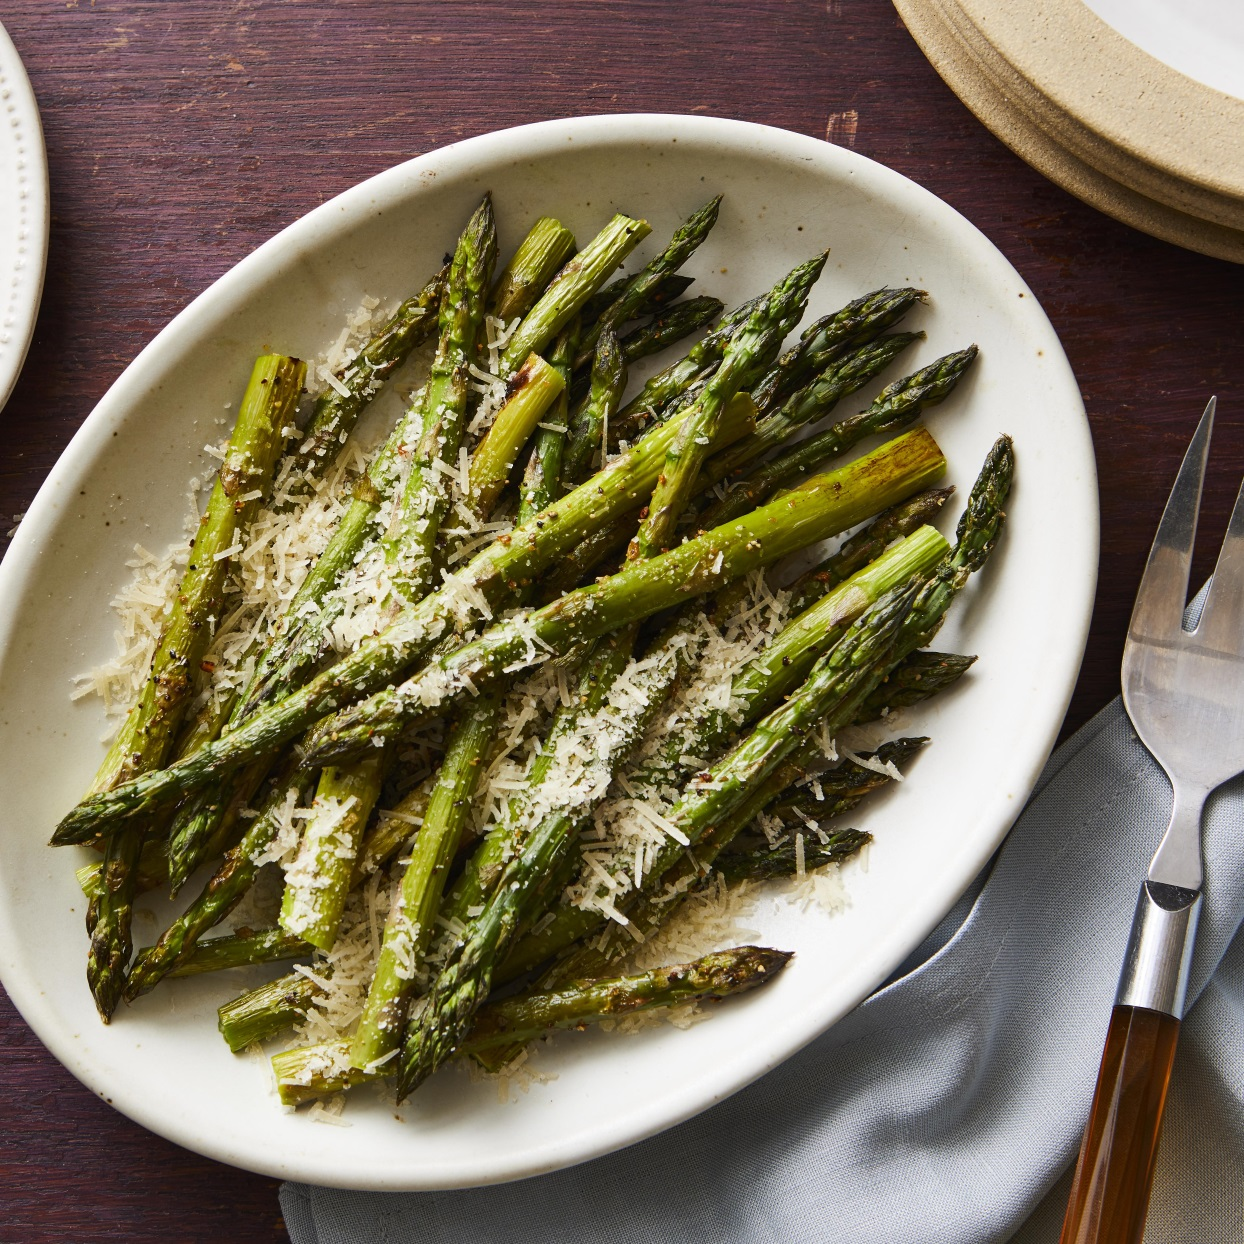 Roasted Asparagus Parmesan Trusted Brands